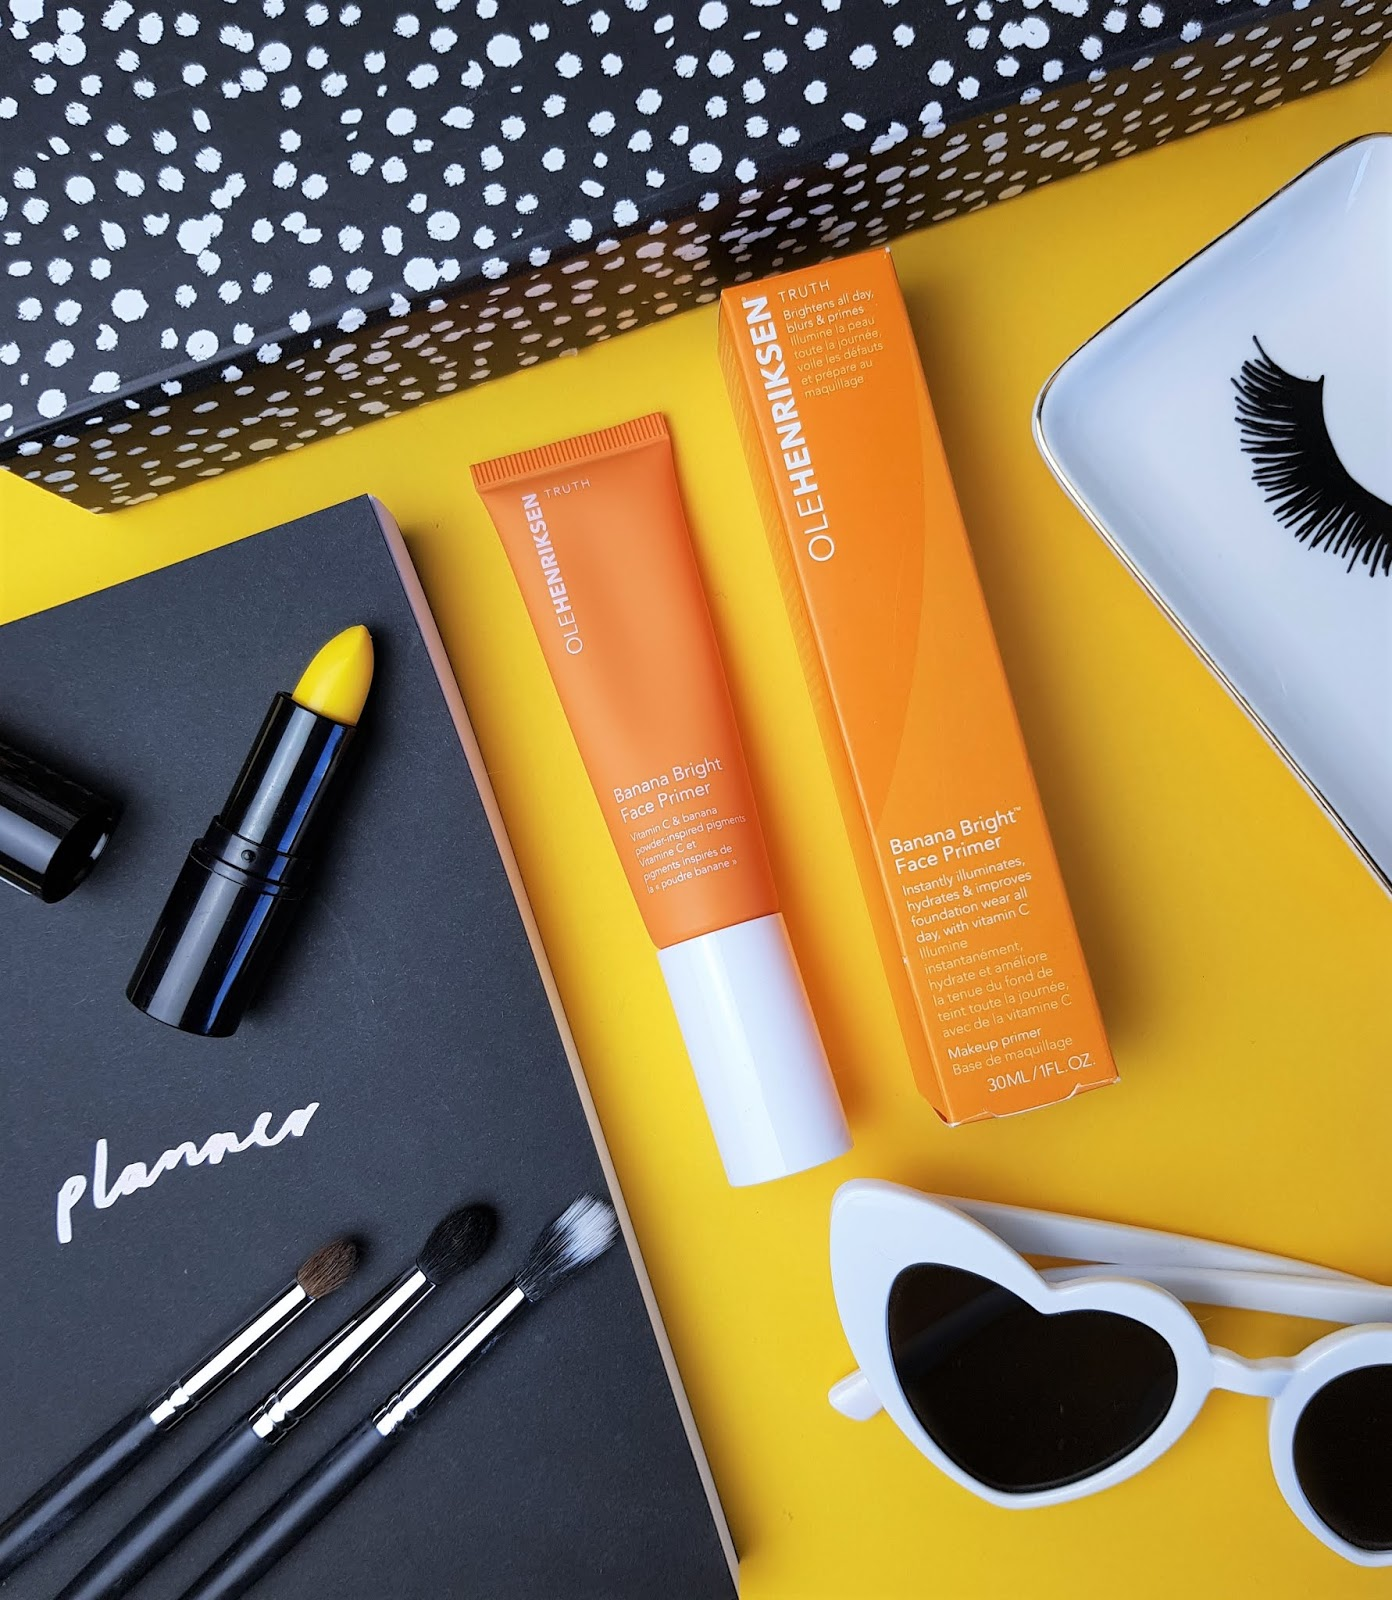 Ole Henriksen Banana Bright Face Primer Review